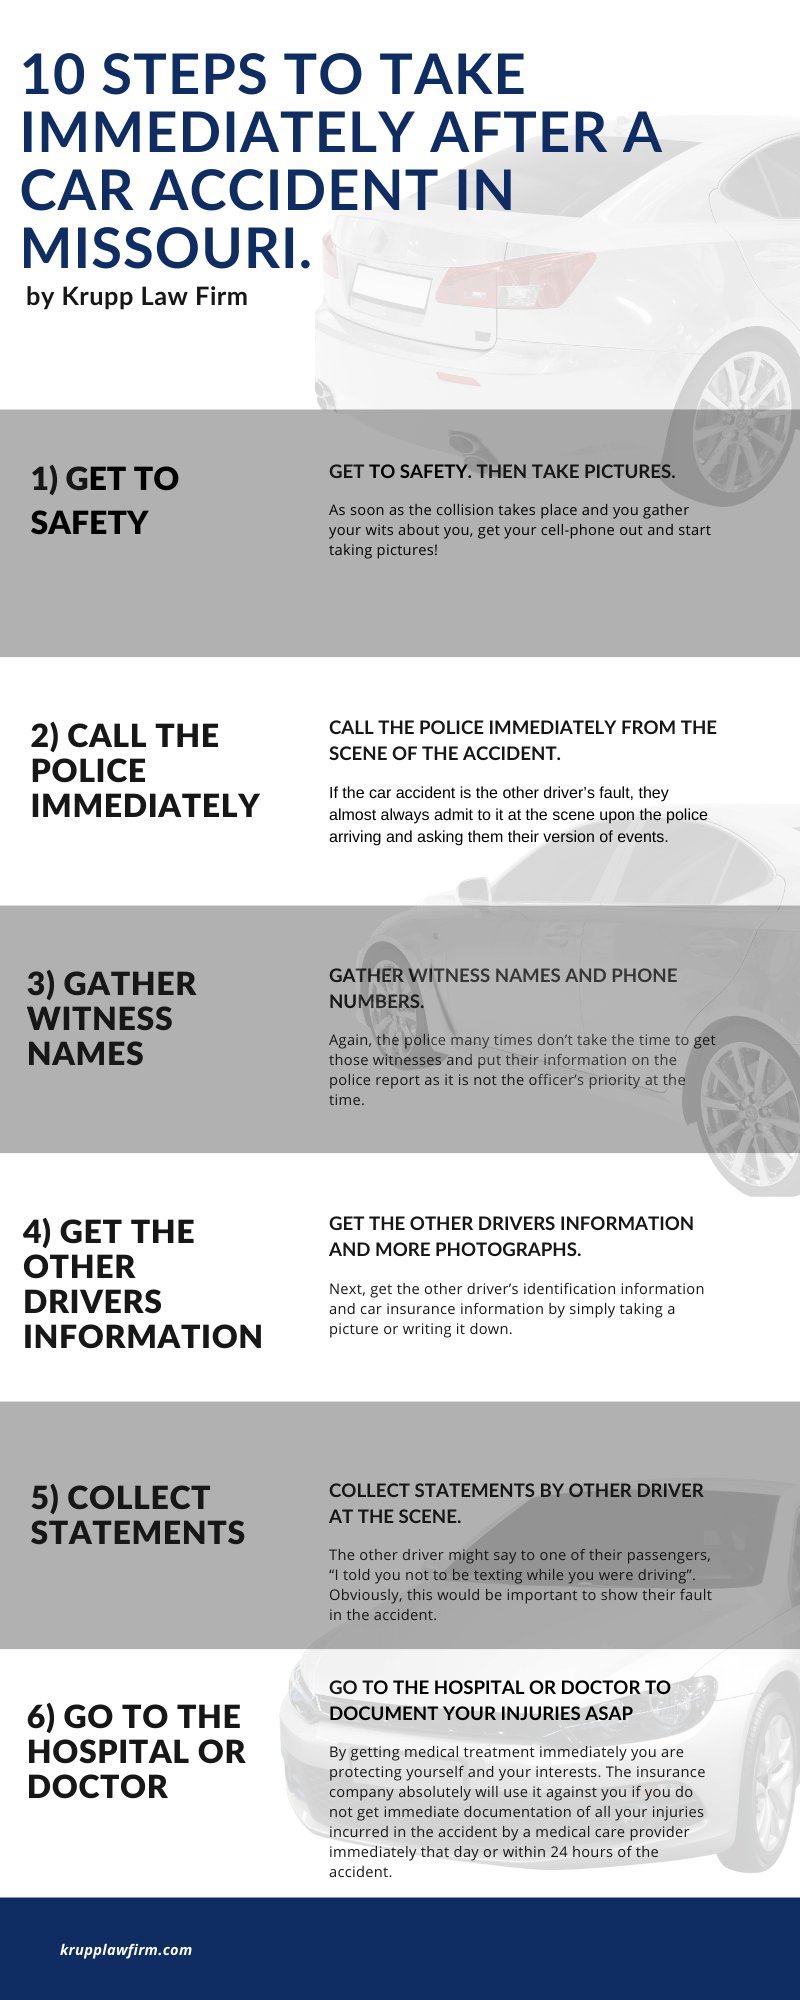 ten steps to take after a car accident infographic 1